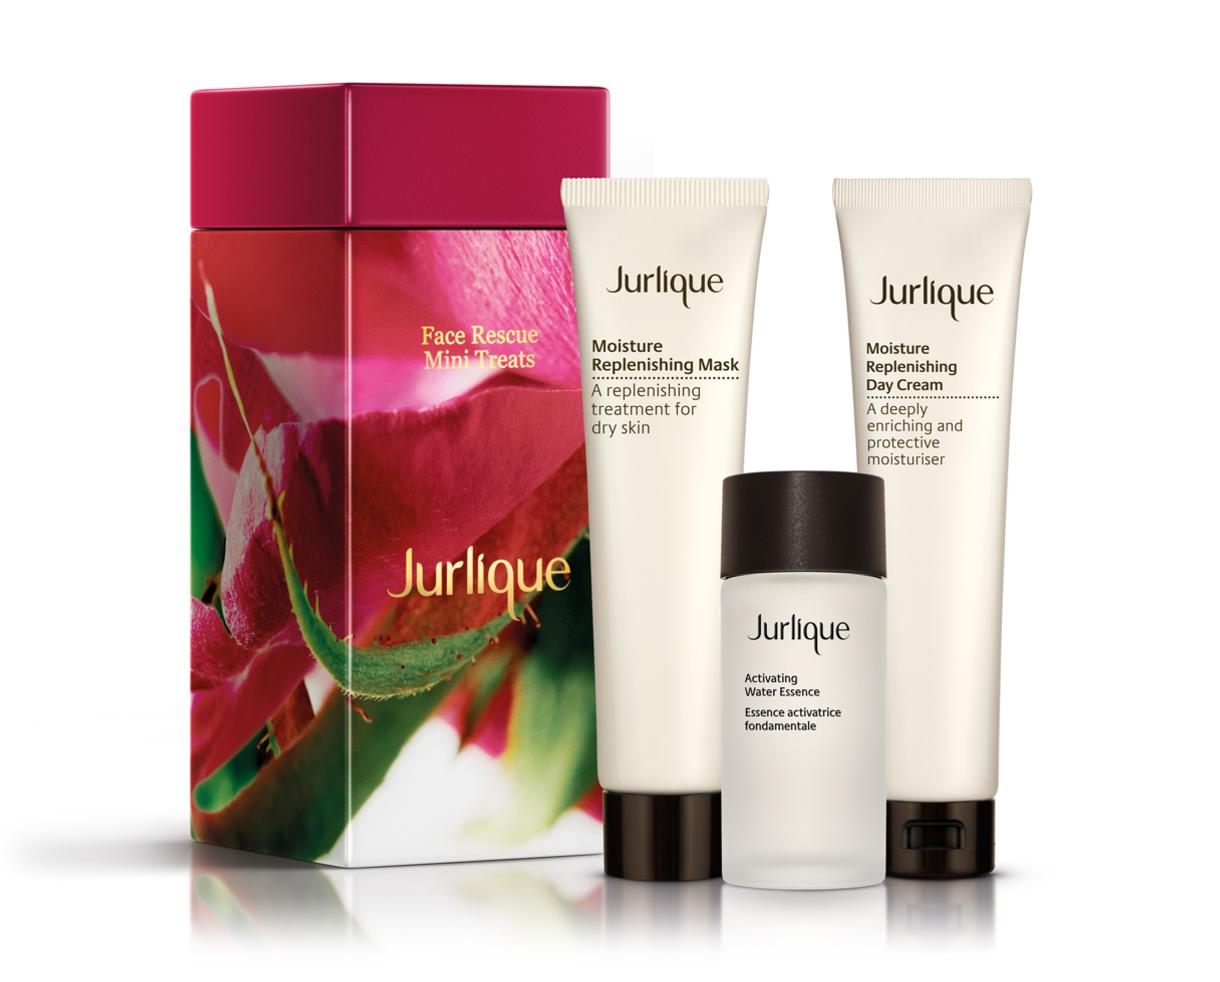 Jurlique Skin Care Exclusive Holiday Offer: 30% OFF SITE WIDE + FREE MINI NIGHT CREAM GIFT + 3 FREE SAMPLES